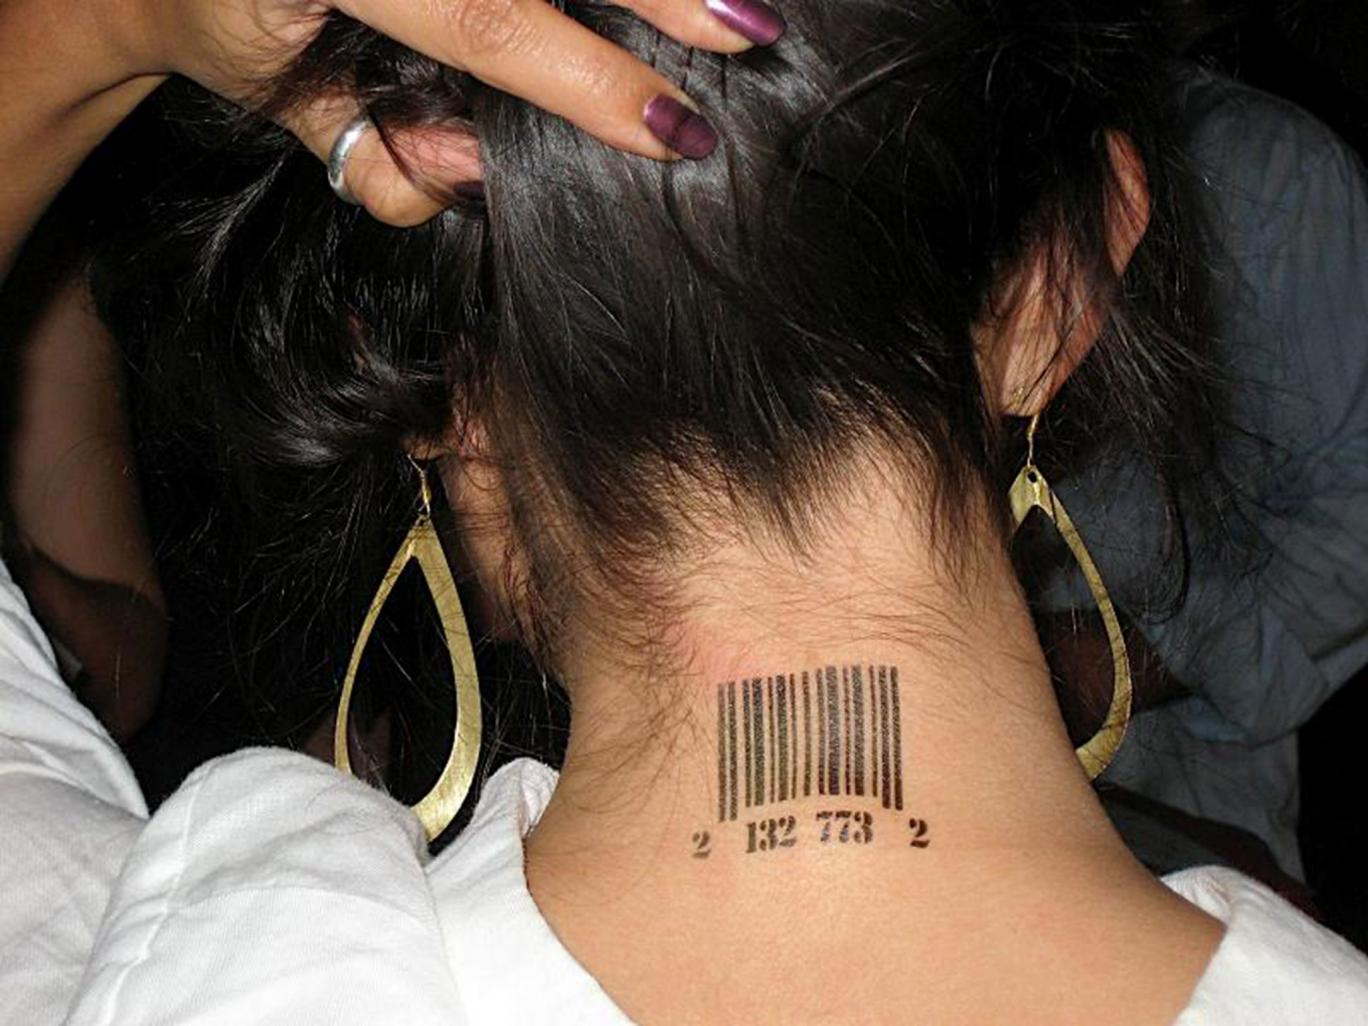 Human trafficking victims are sometimes branded like cattle. Source: The Independent